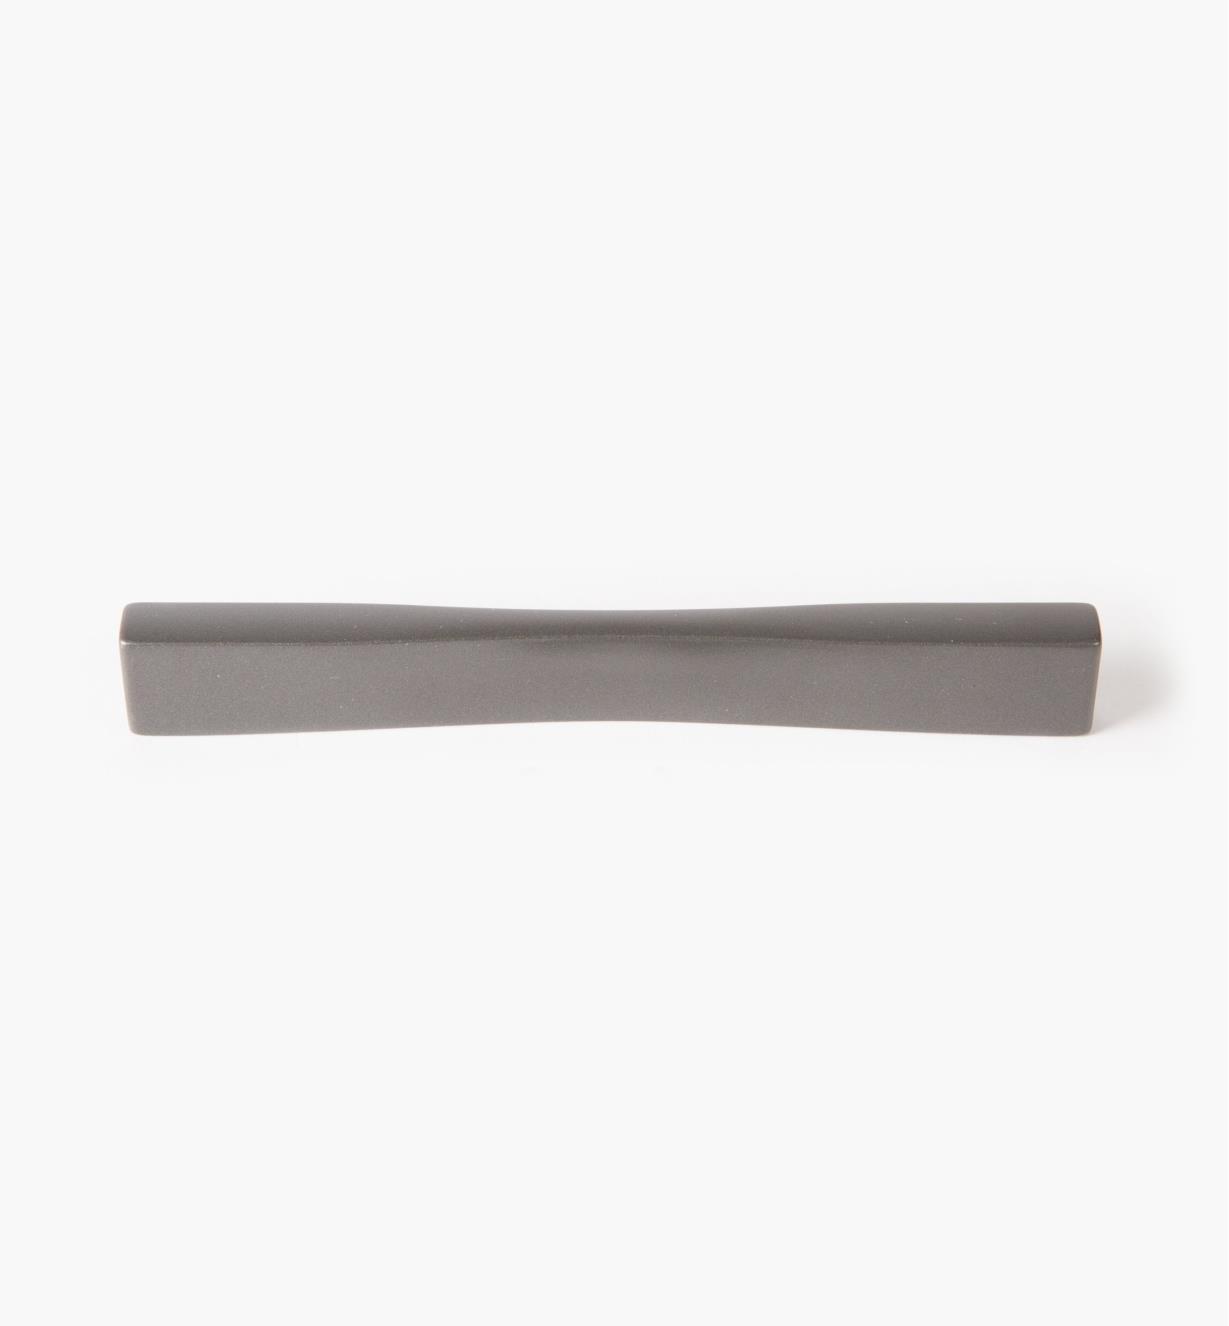 00A7323 - Linea 96mm/128mm Graphite Pull, each